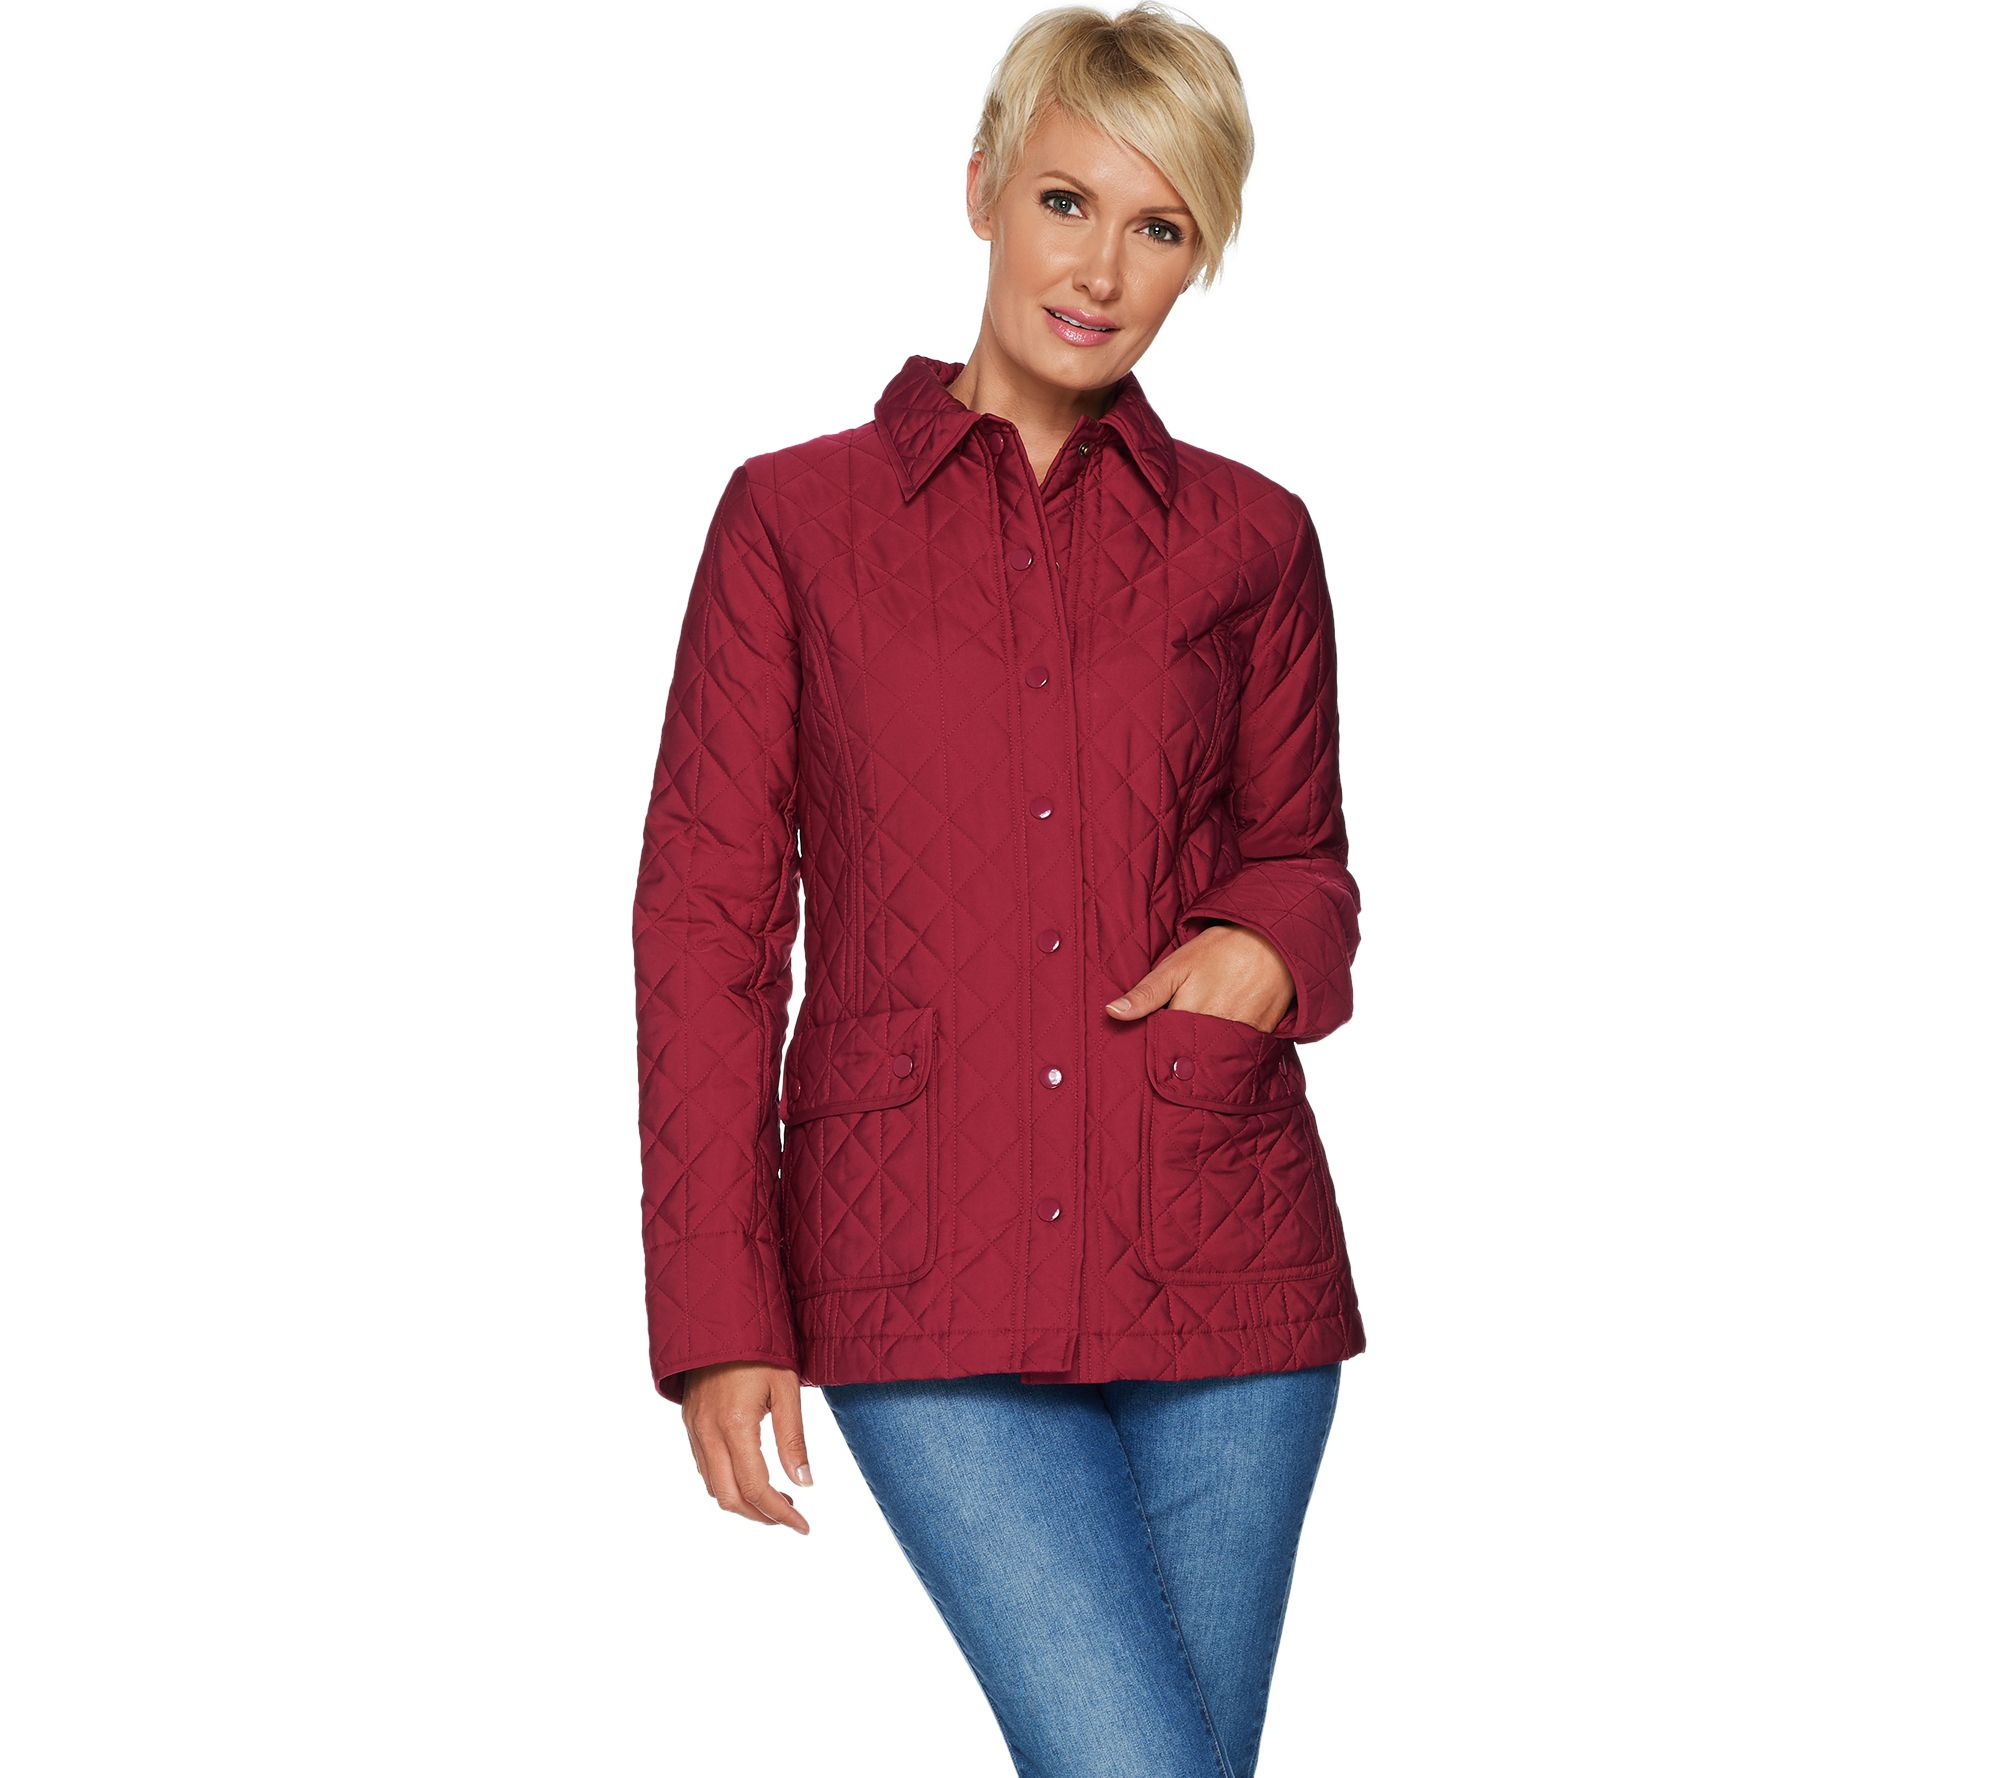 dd515b525b15ff Joan Rivers Quilted Barn Jacket with Pocket Detail - Page 1 — QVC.com